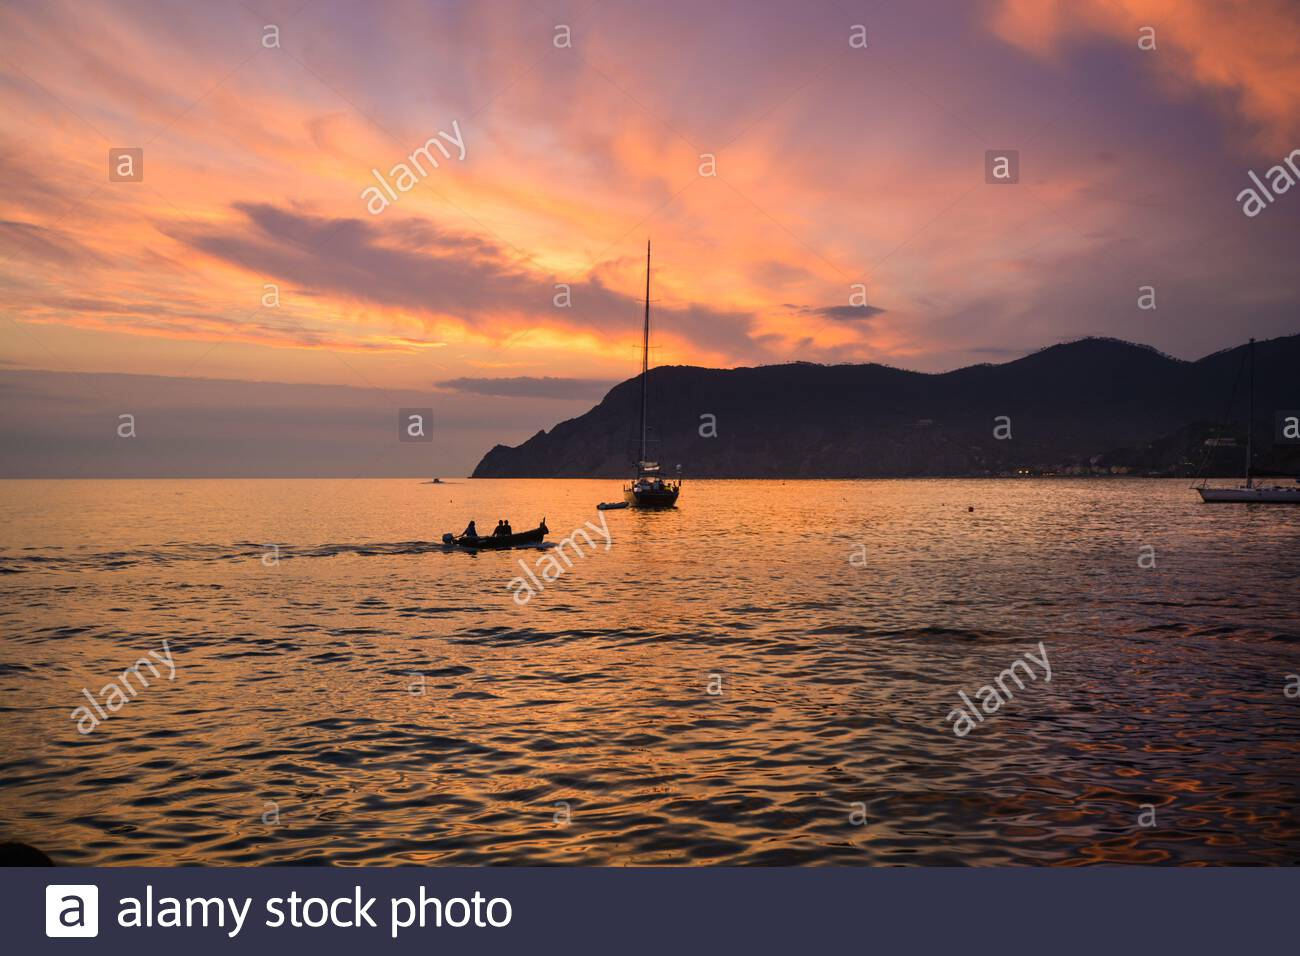 Sunset silhouette view of a small boats in the harbor of Vernazza, Cinque Terre Italy under a colorful pink and purple sunset. Stock Photo